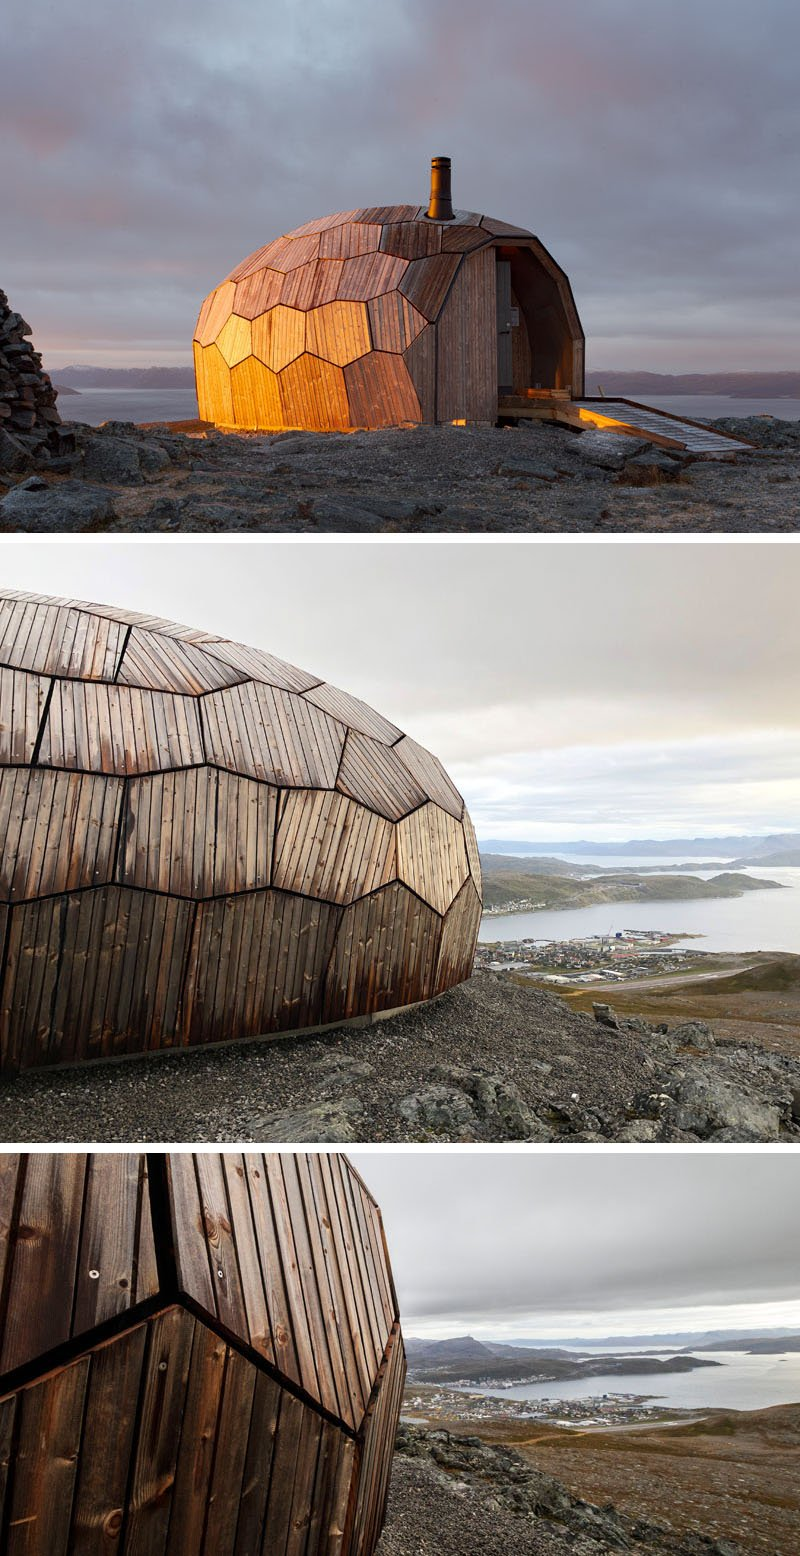 Wood Cabins on Top of a Mountain in Hammerfest, Norway